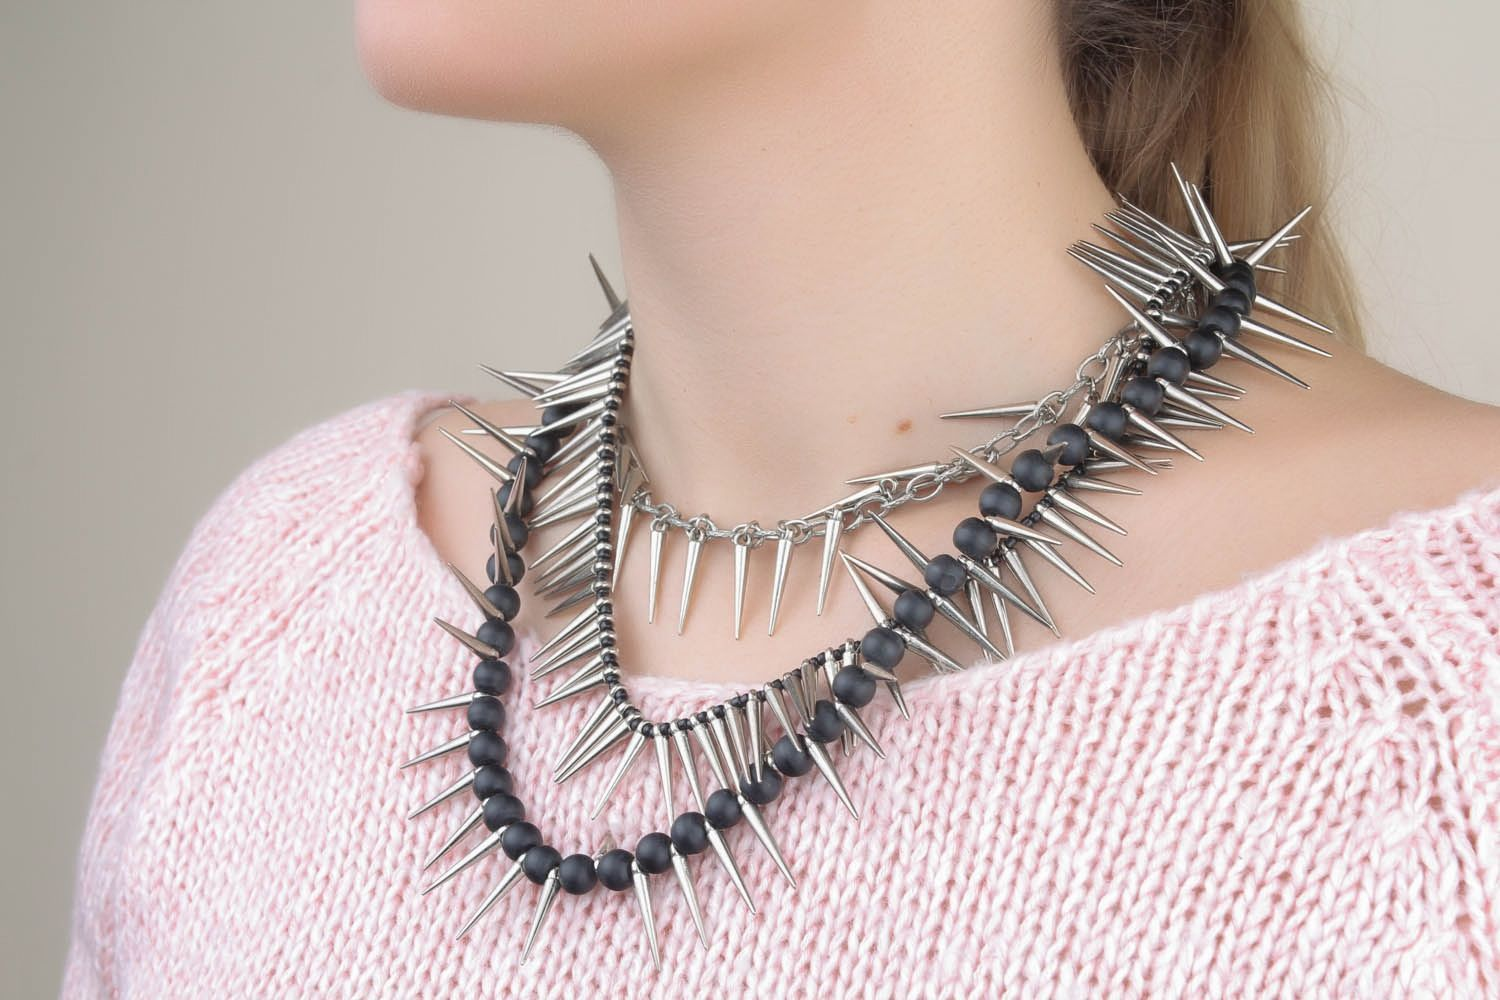 Unique metal necklace with spikes photo 1